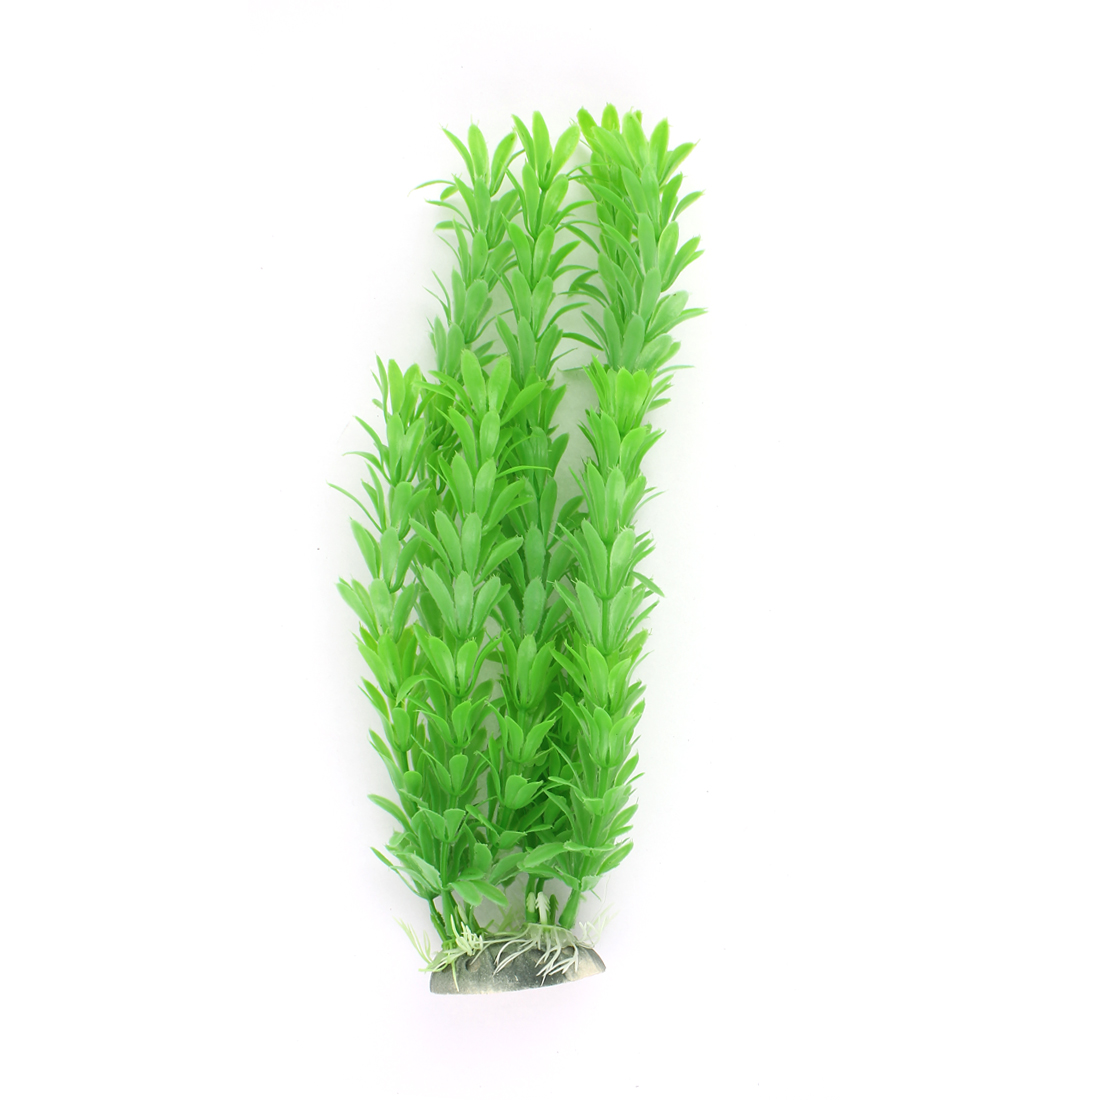 Fish Tank Aquarium Artificial Plant Aquatic Grass Deocr Green